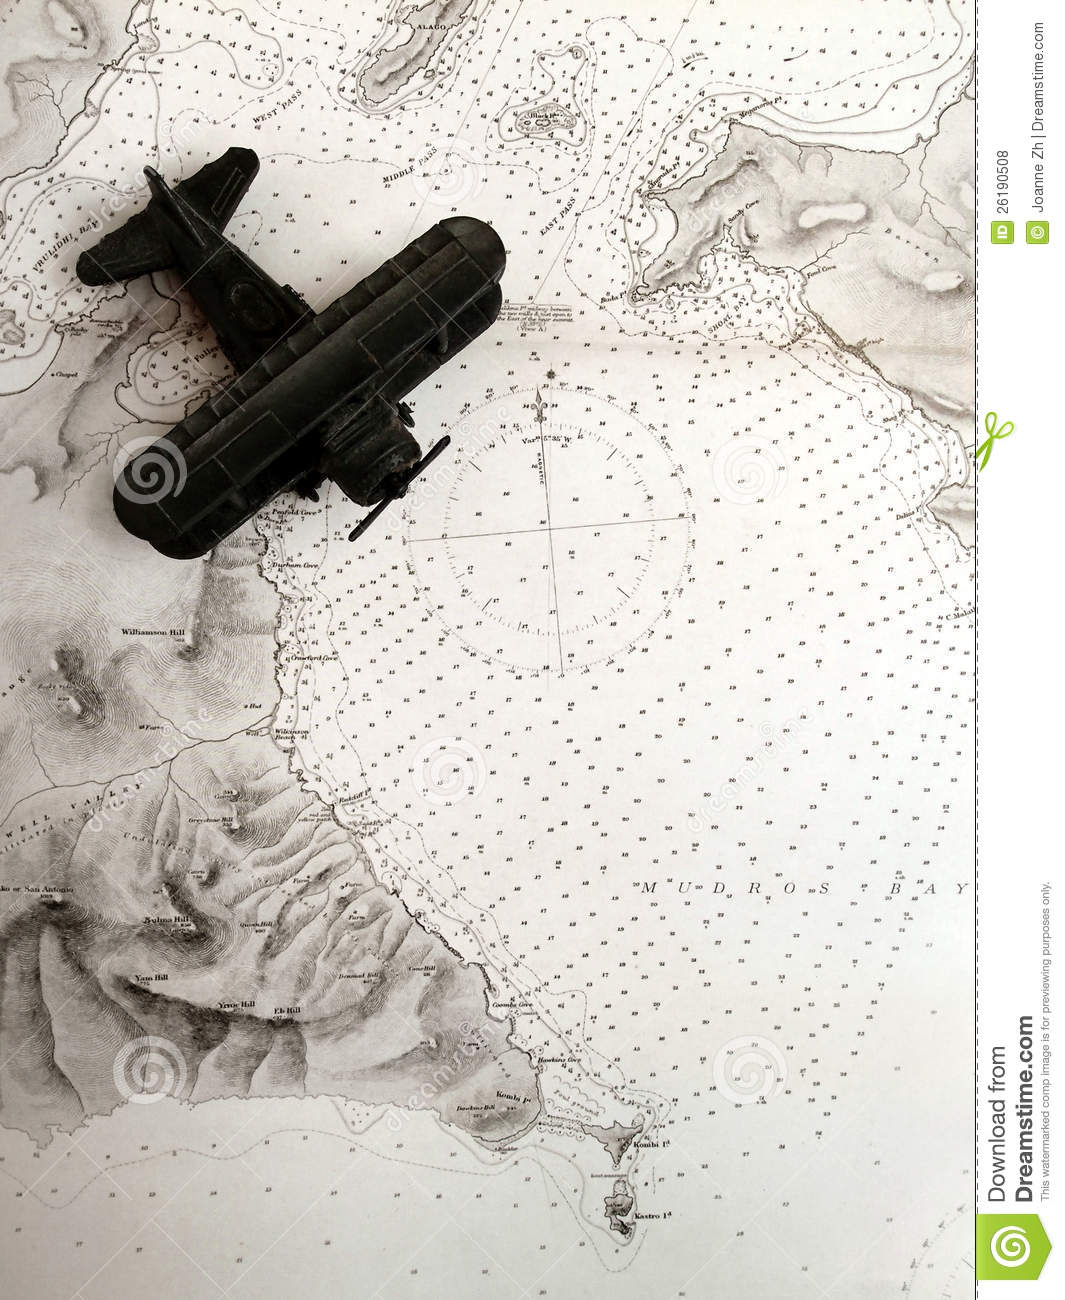 Antique biplane on old map